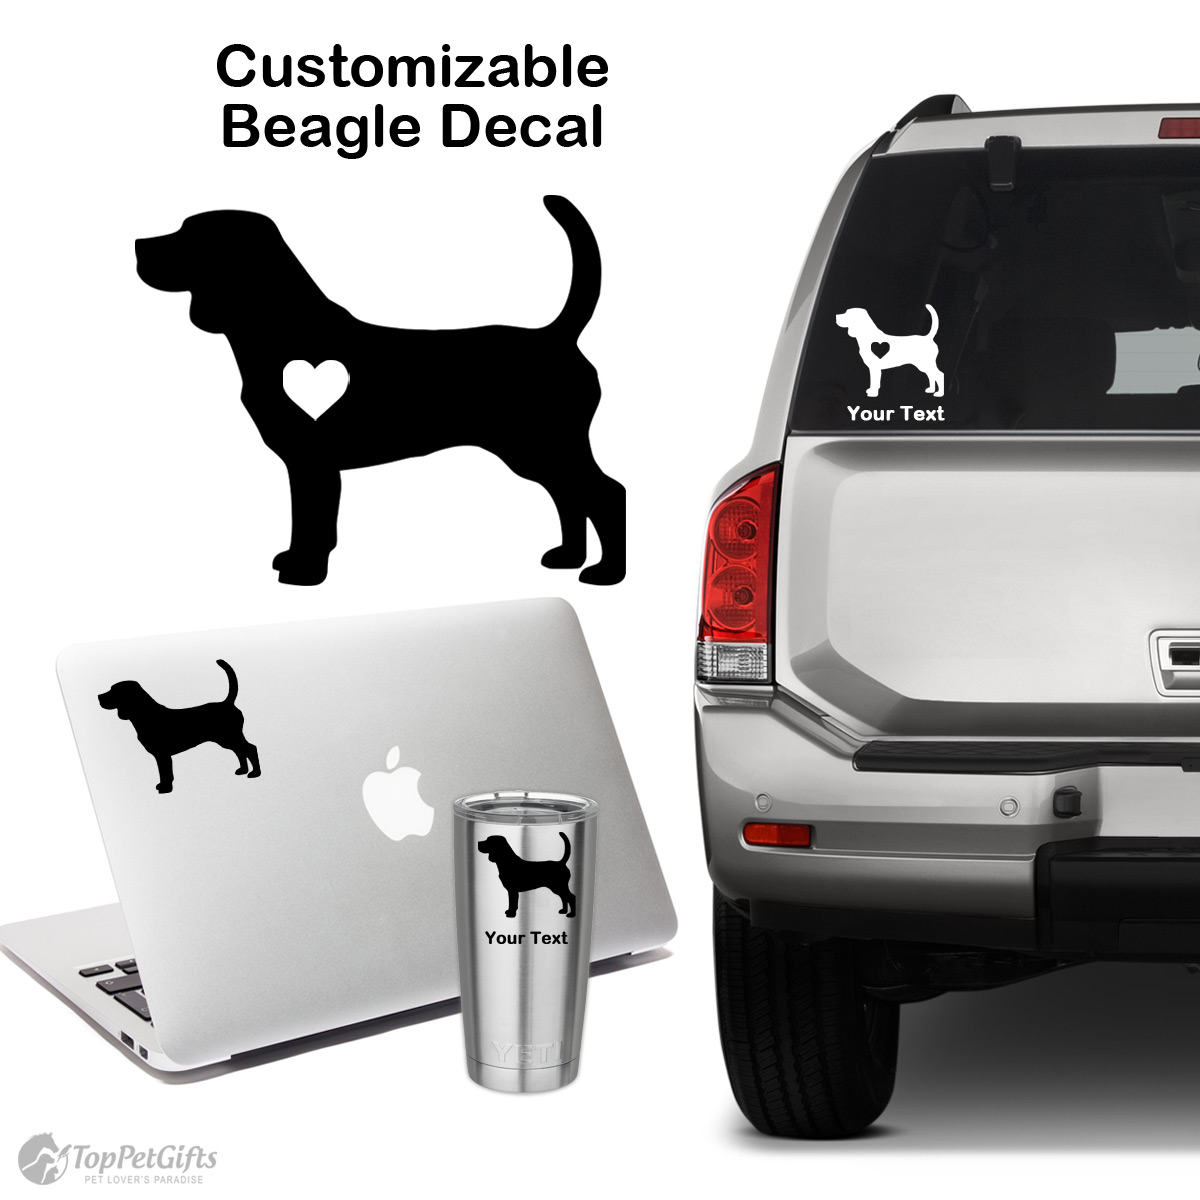 Personalized Beagle Decal